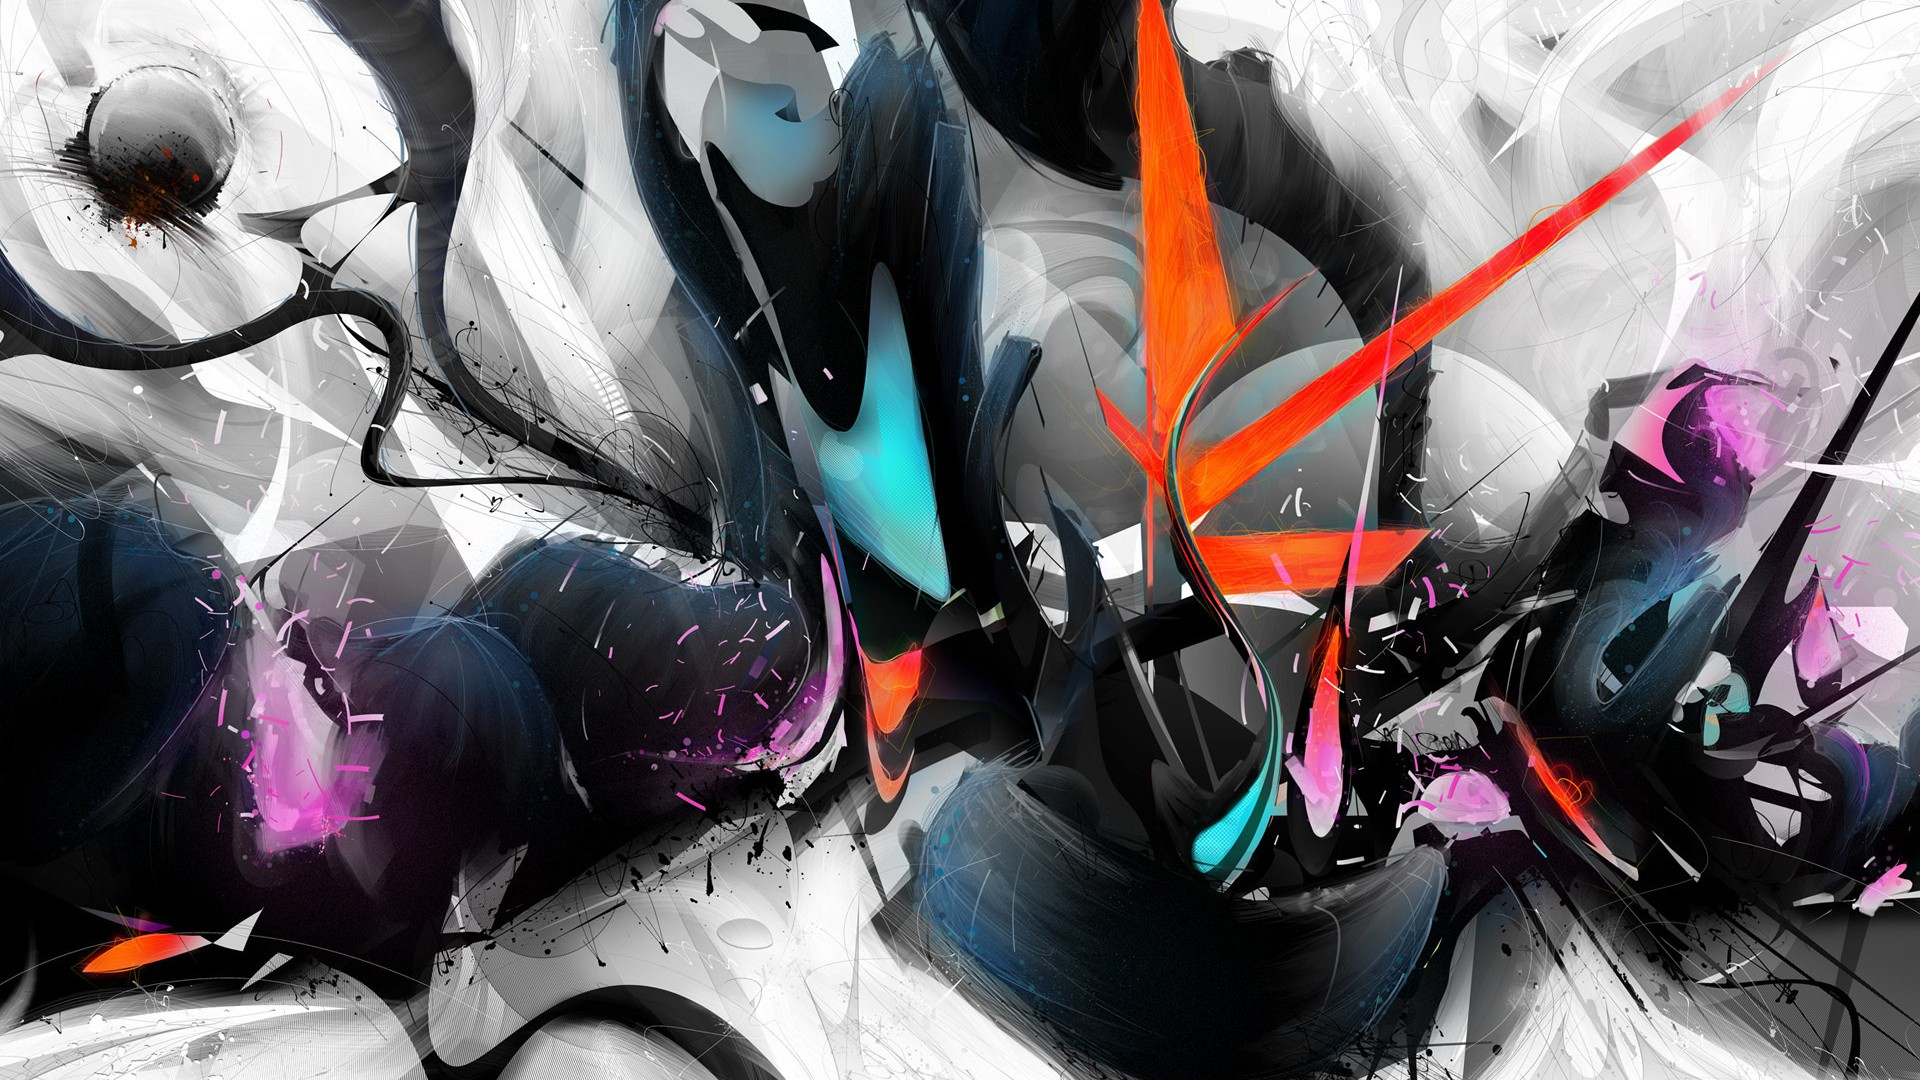 Cool Abstract Designs